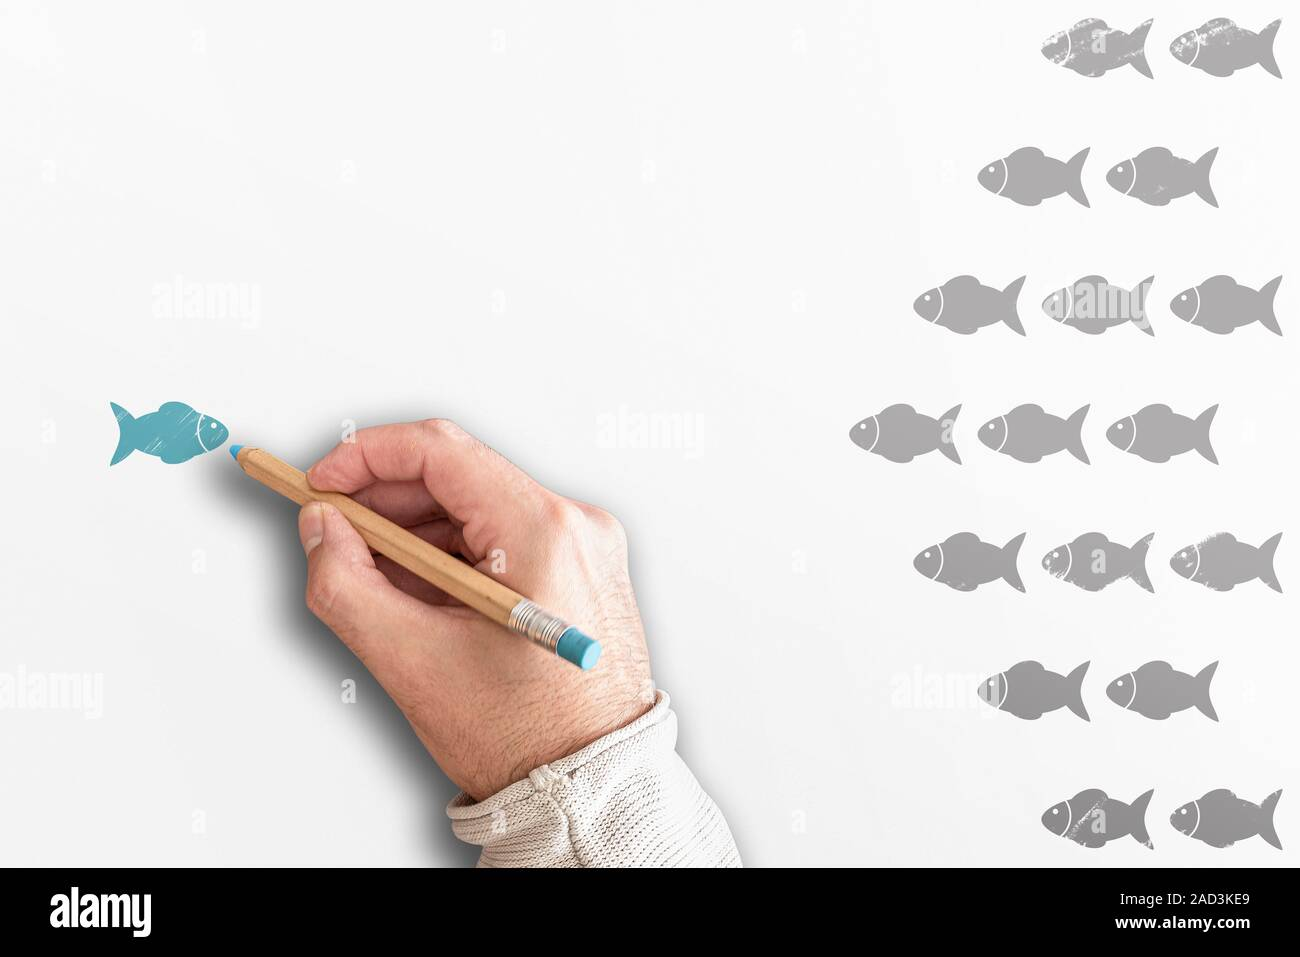 standing out from the crowd or leadership concept with group of fishes going in one direction and one going in opposite direction Stock Photo